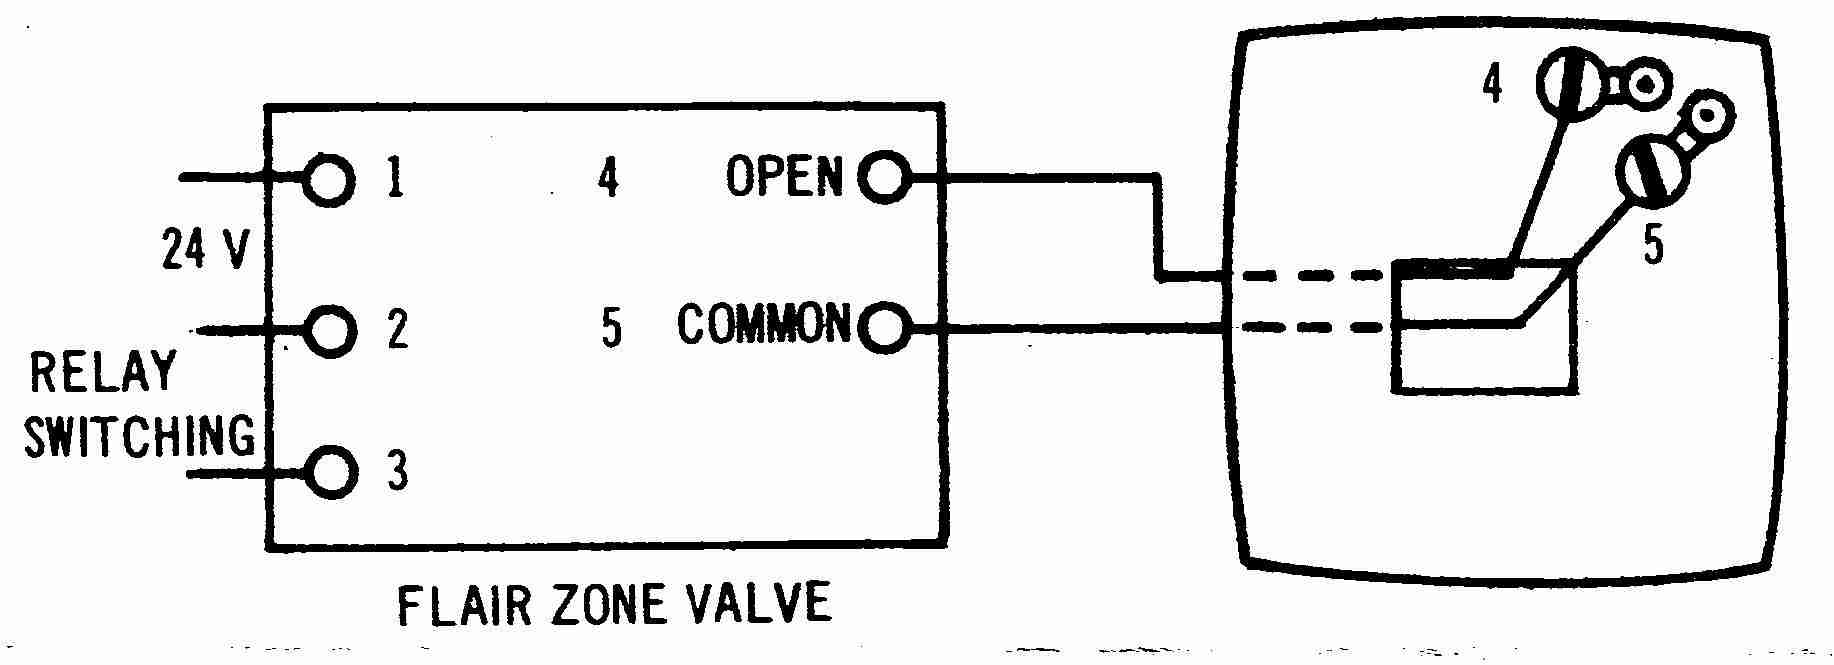 Reznor Wiring Diagram also Blower Door Interlock Switch likewise 8p26w7 also Thermostat Wiring Instructions moreover Honeywell Thermostat Wiring Diagram 3 Wire. on white rodgers thermostat schematic